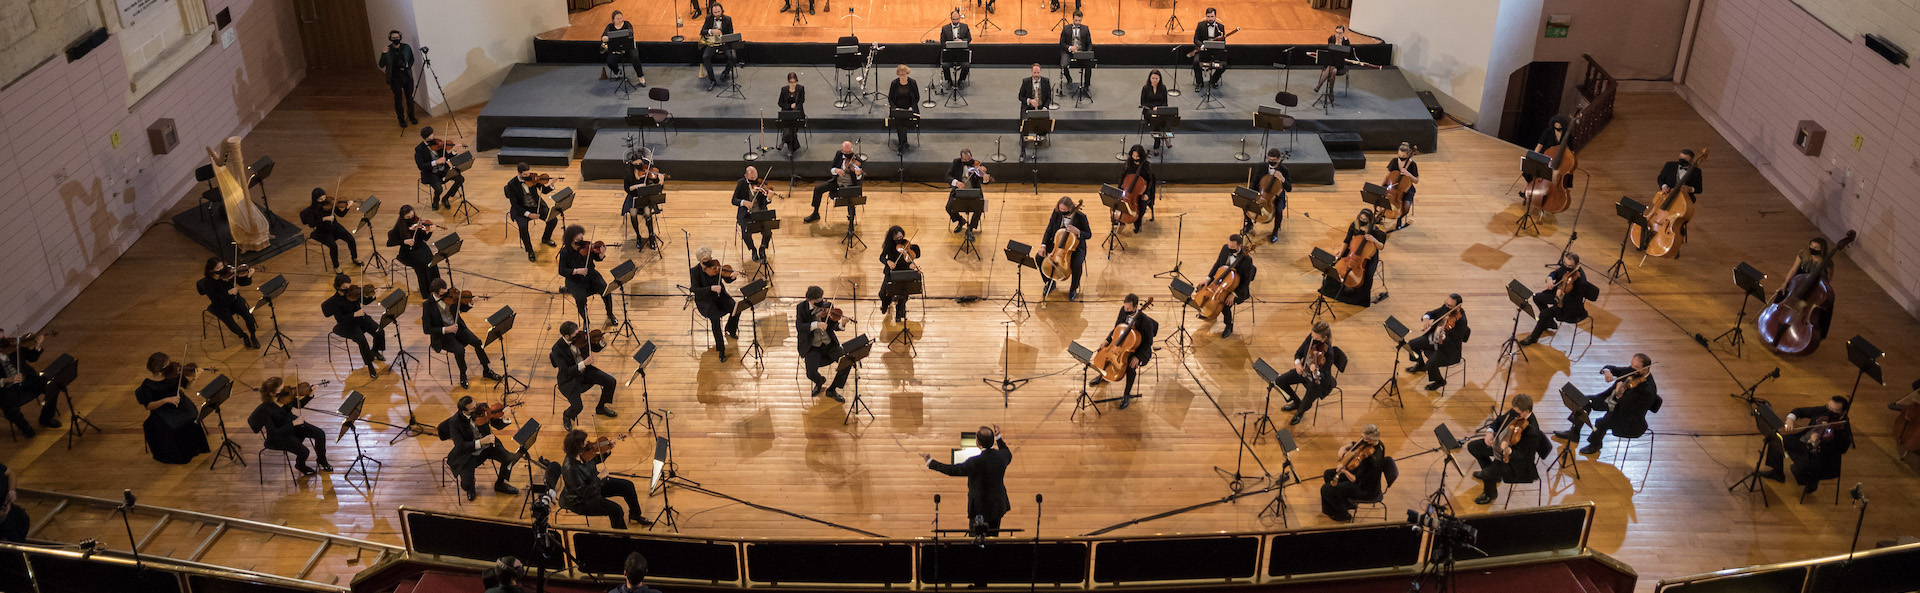 A series of online events in Malta held by the Malta Philharmonic Orchestra